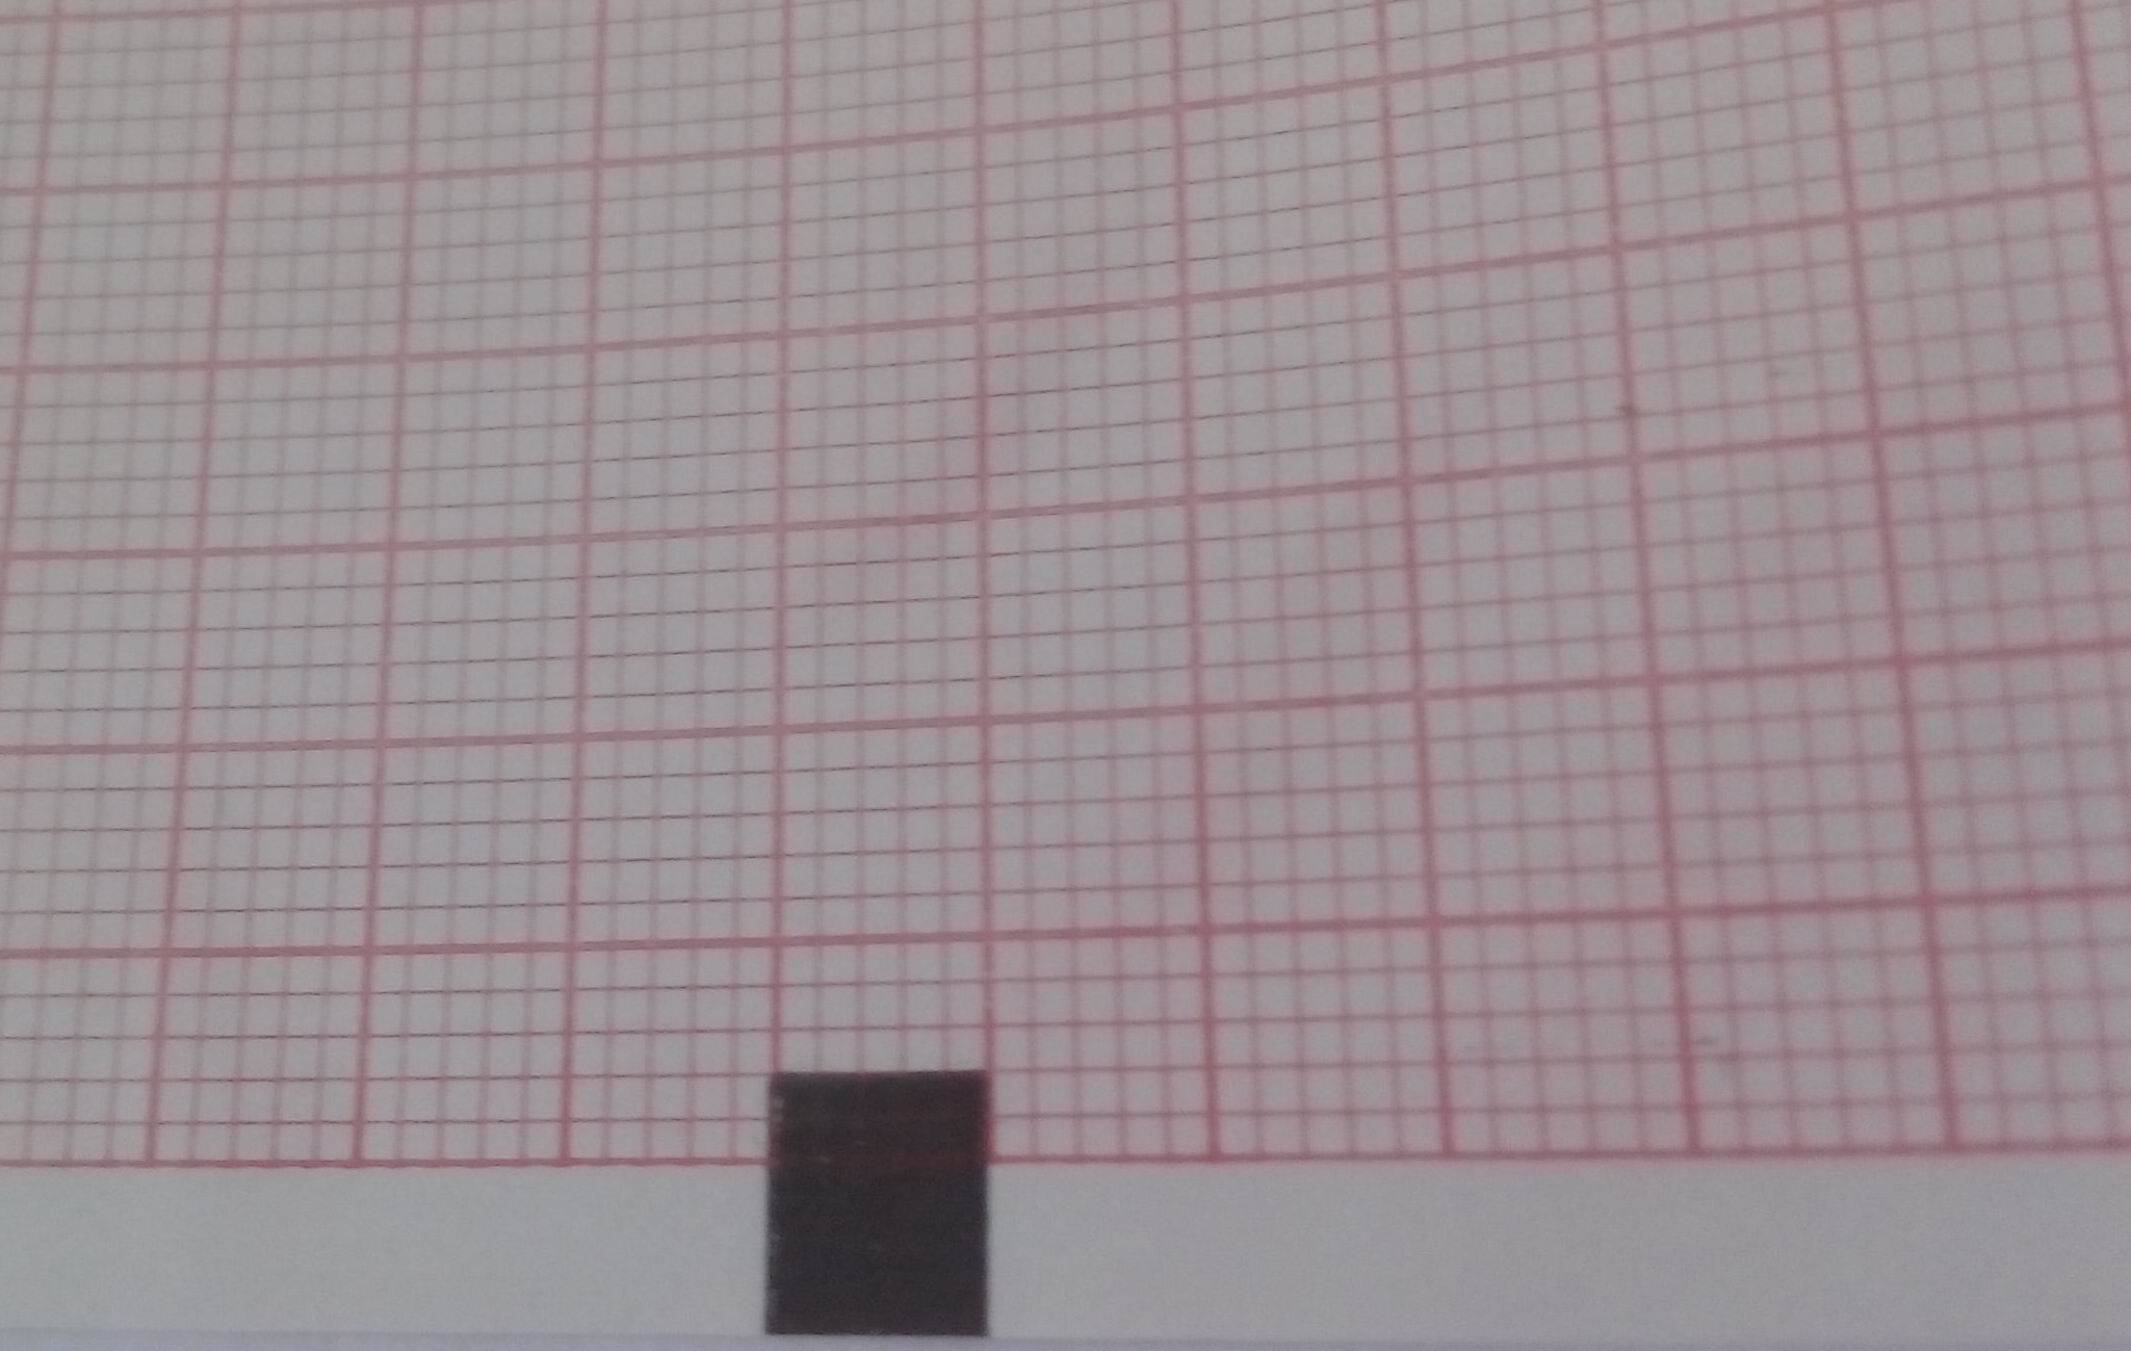 Twelve-Conduct Electrocardiograph Paper-183mmX130mm-200P